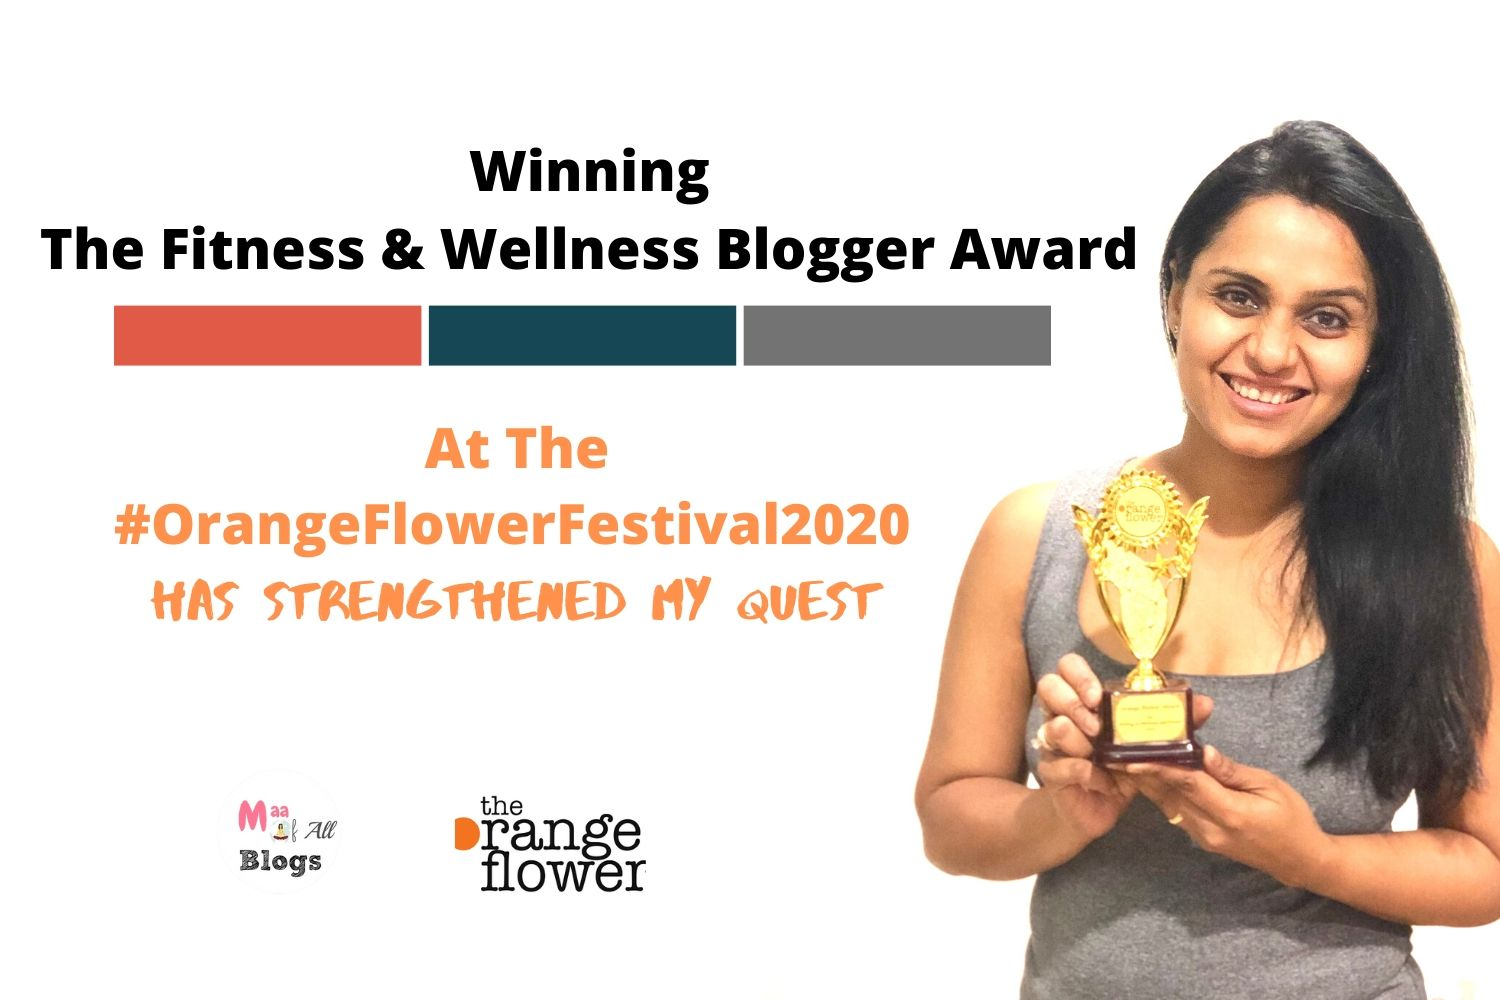 Winning The Fitness and Wellness Blogger Award At the #orangeflowerfestival2020 by women's web